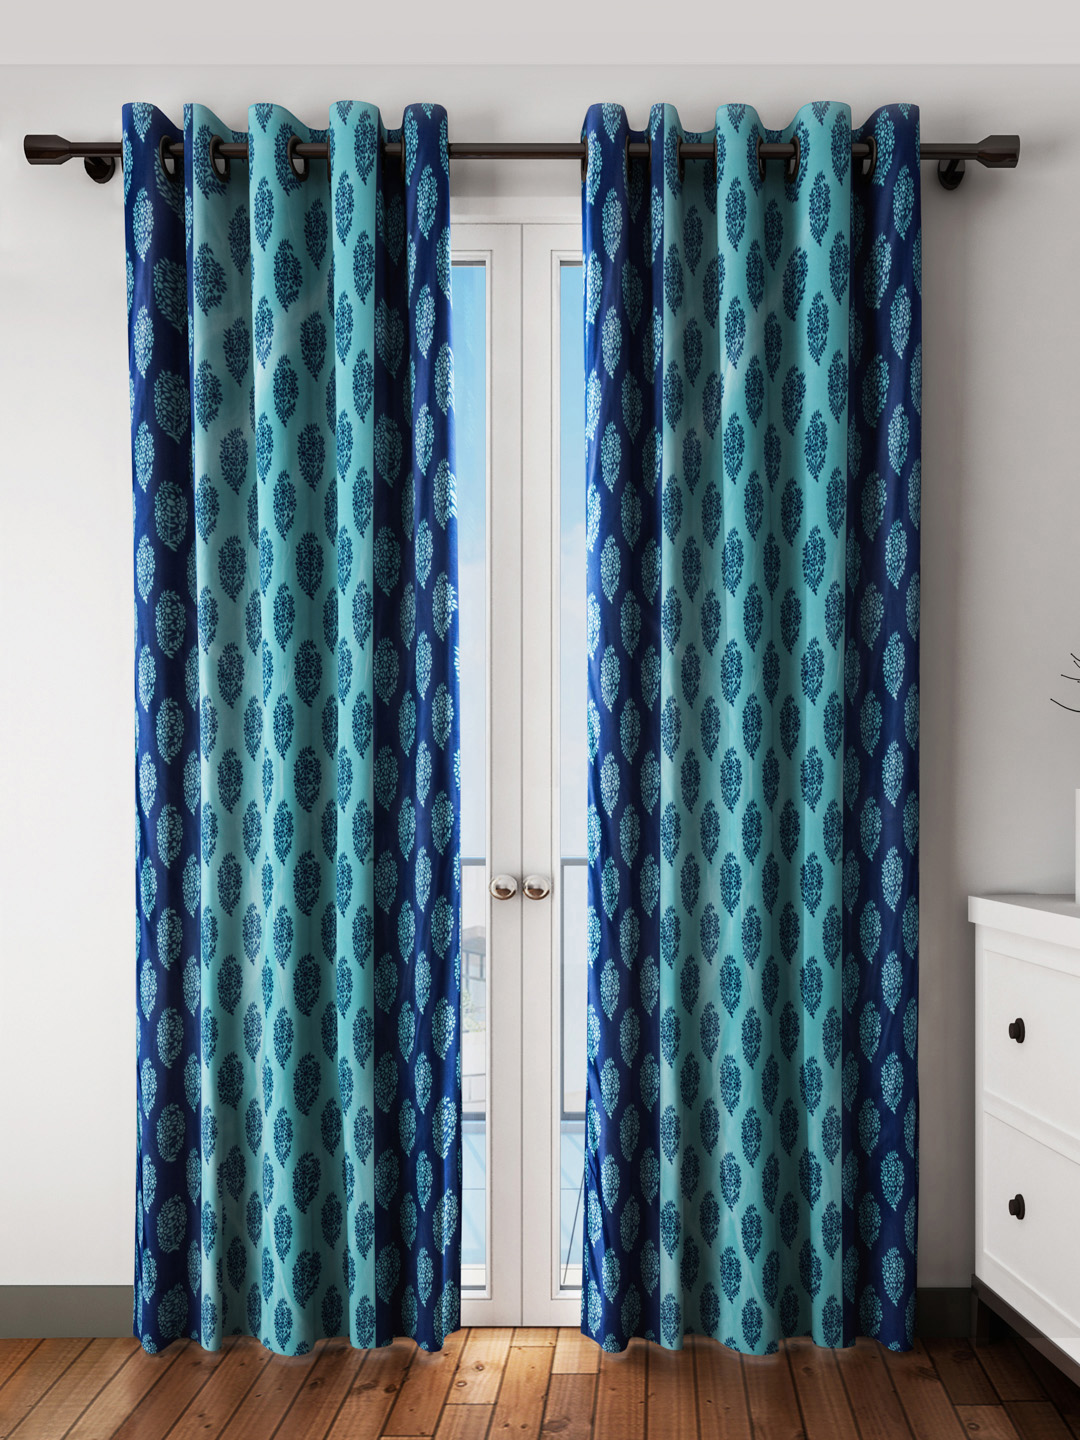 All Curtains Design Types Of Allen And Roth Curtain Rods Bradley Light